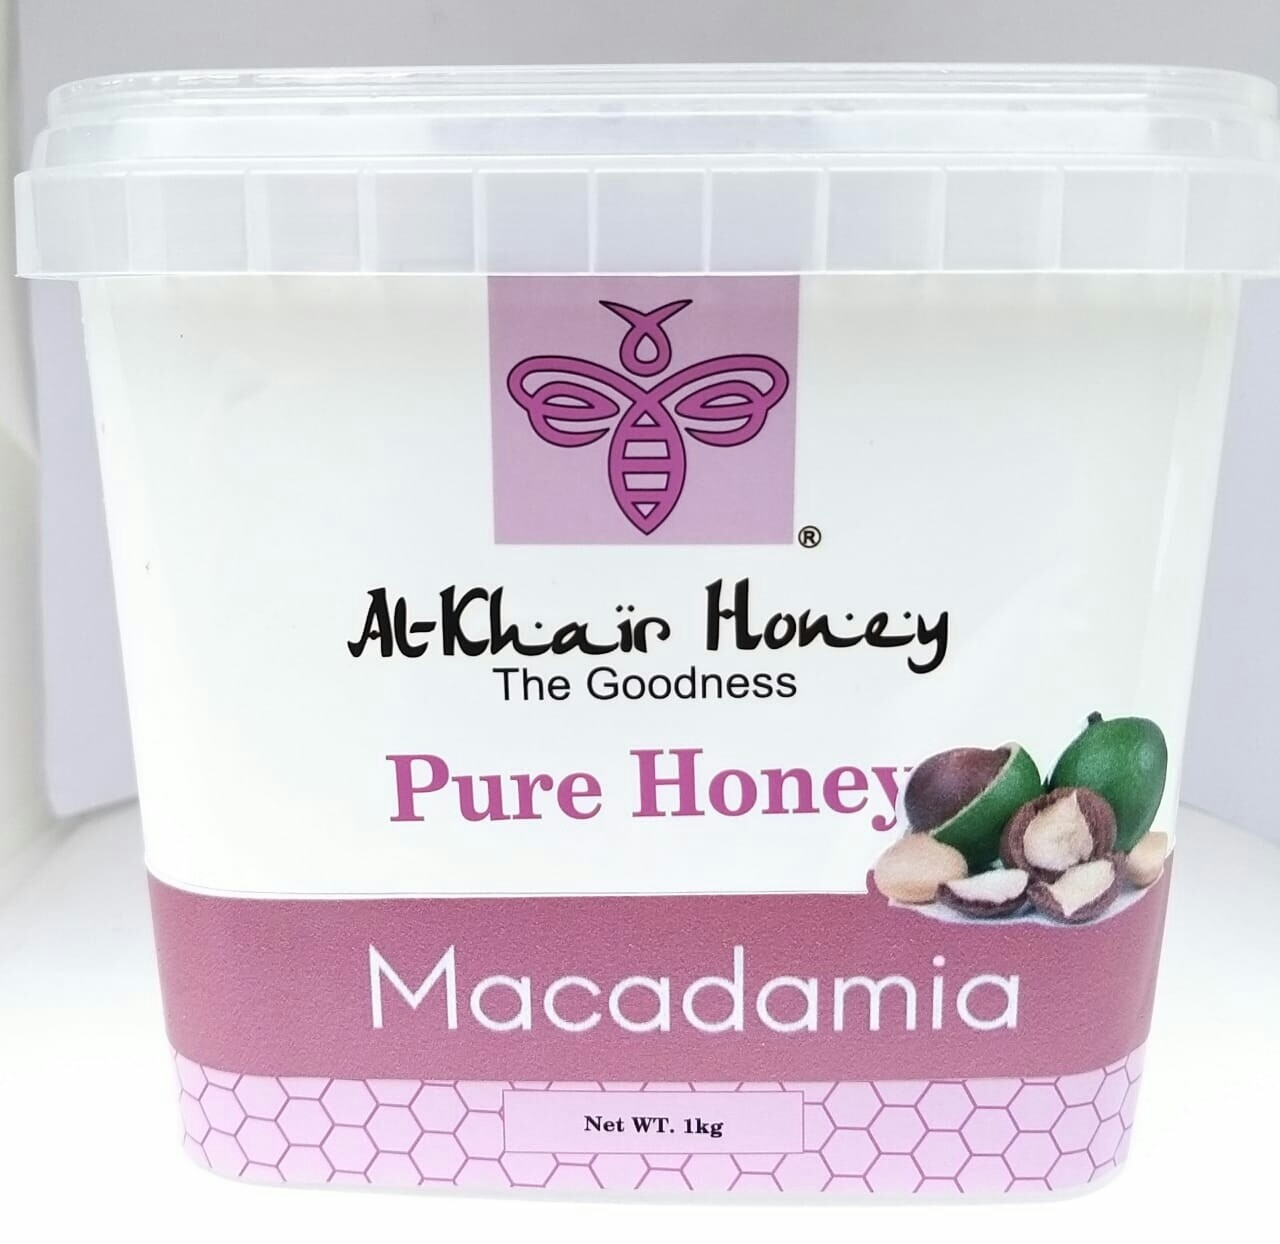 Pure Honey, Macadamia, 1kg Tub